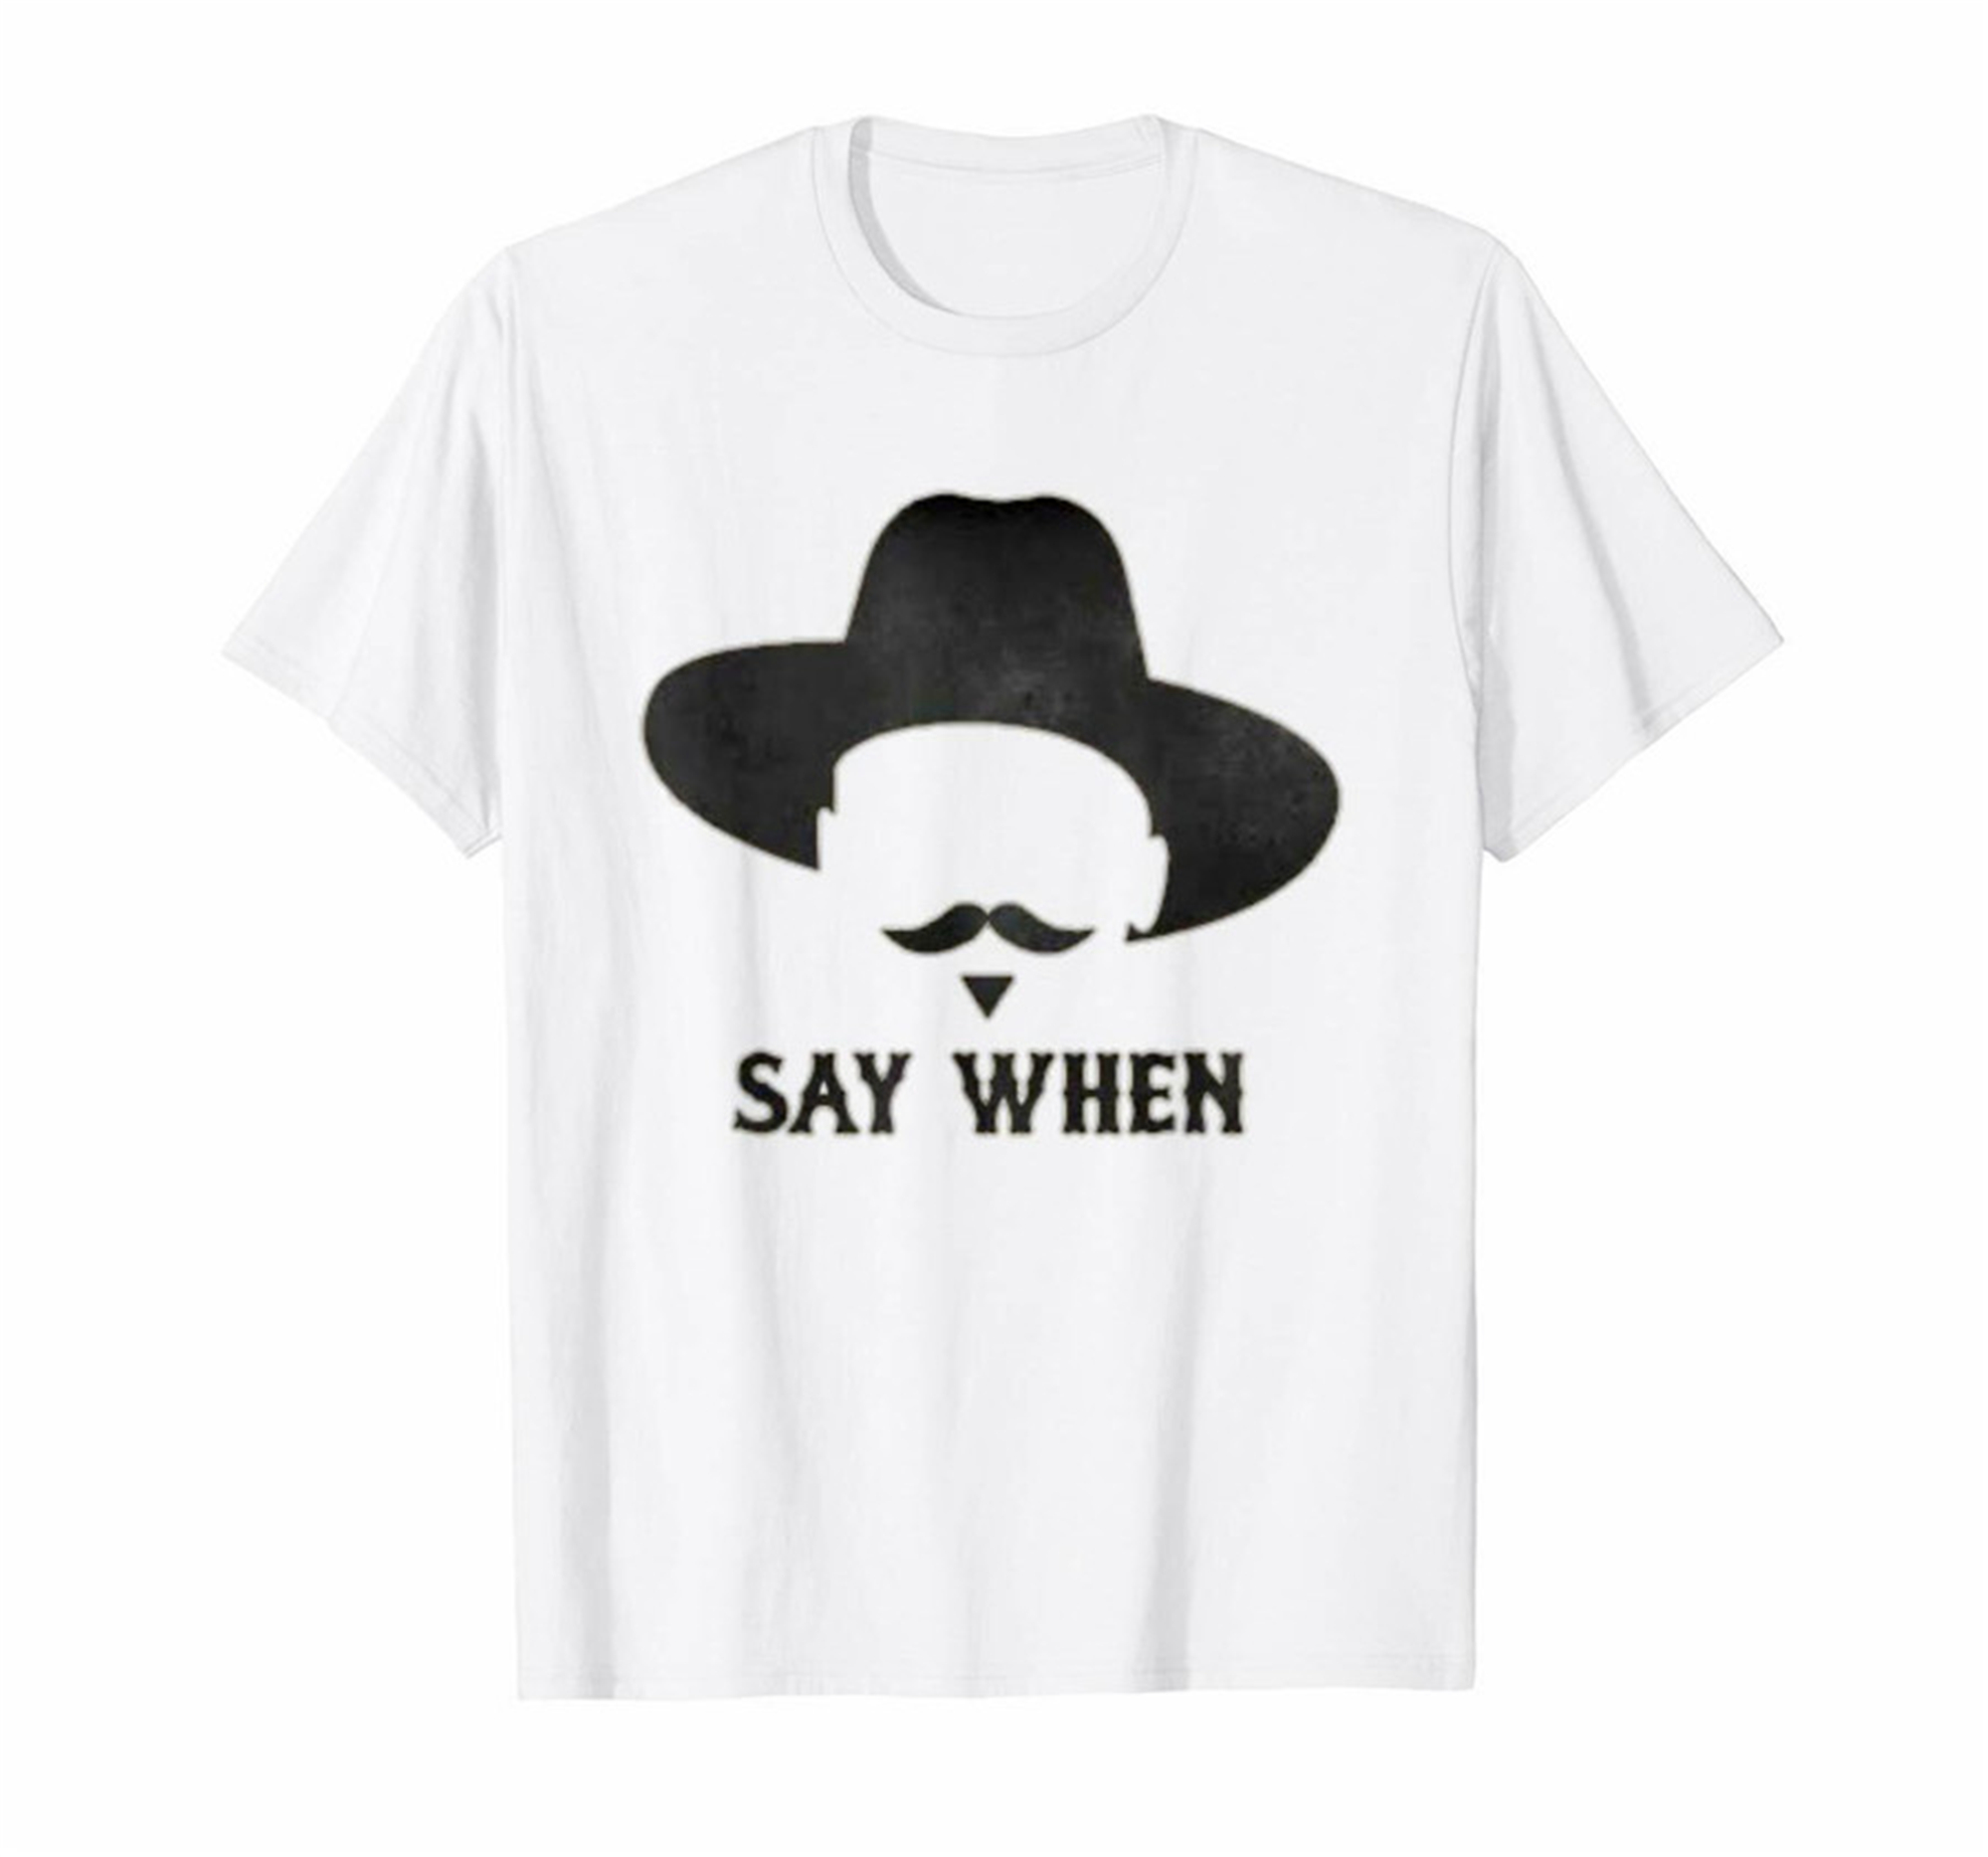 Tombstone Guns I/'m Your Huckleberry  White T-shirt Size S-3XL Mens Tee